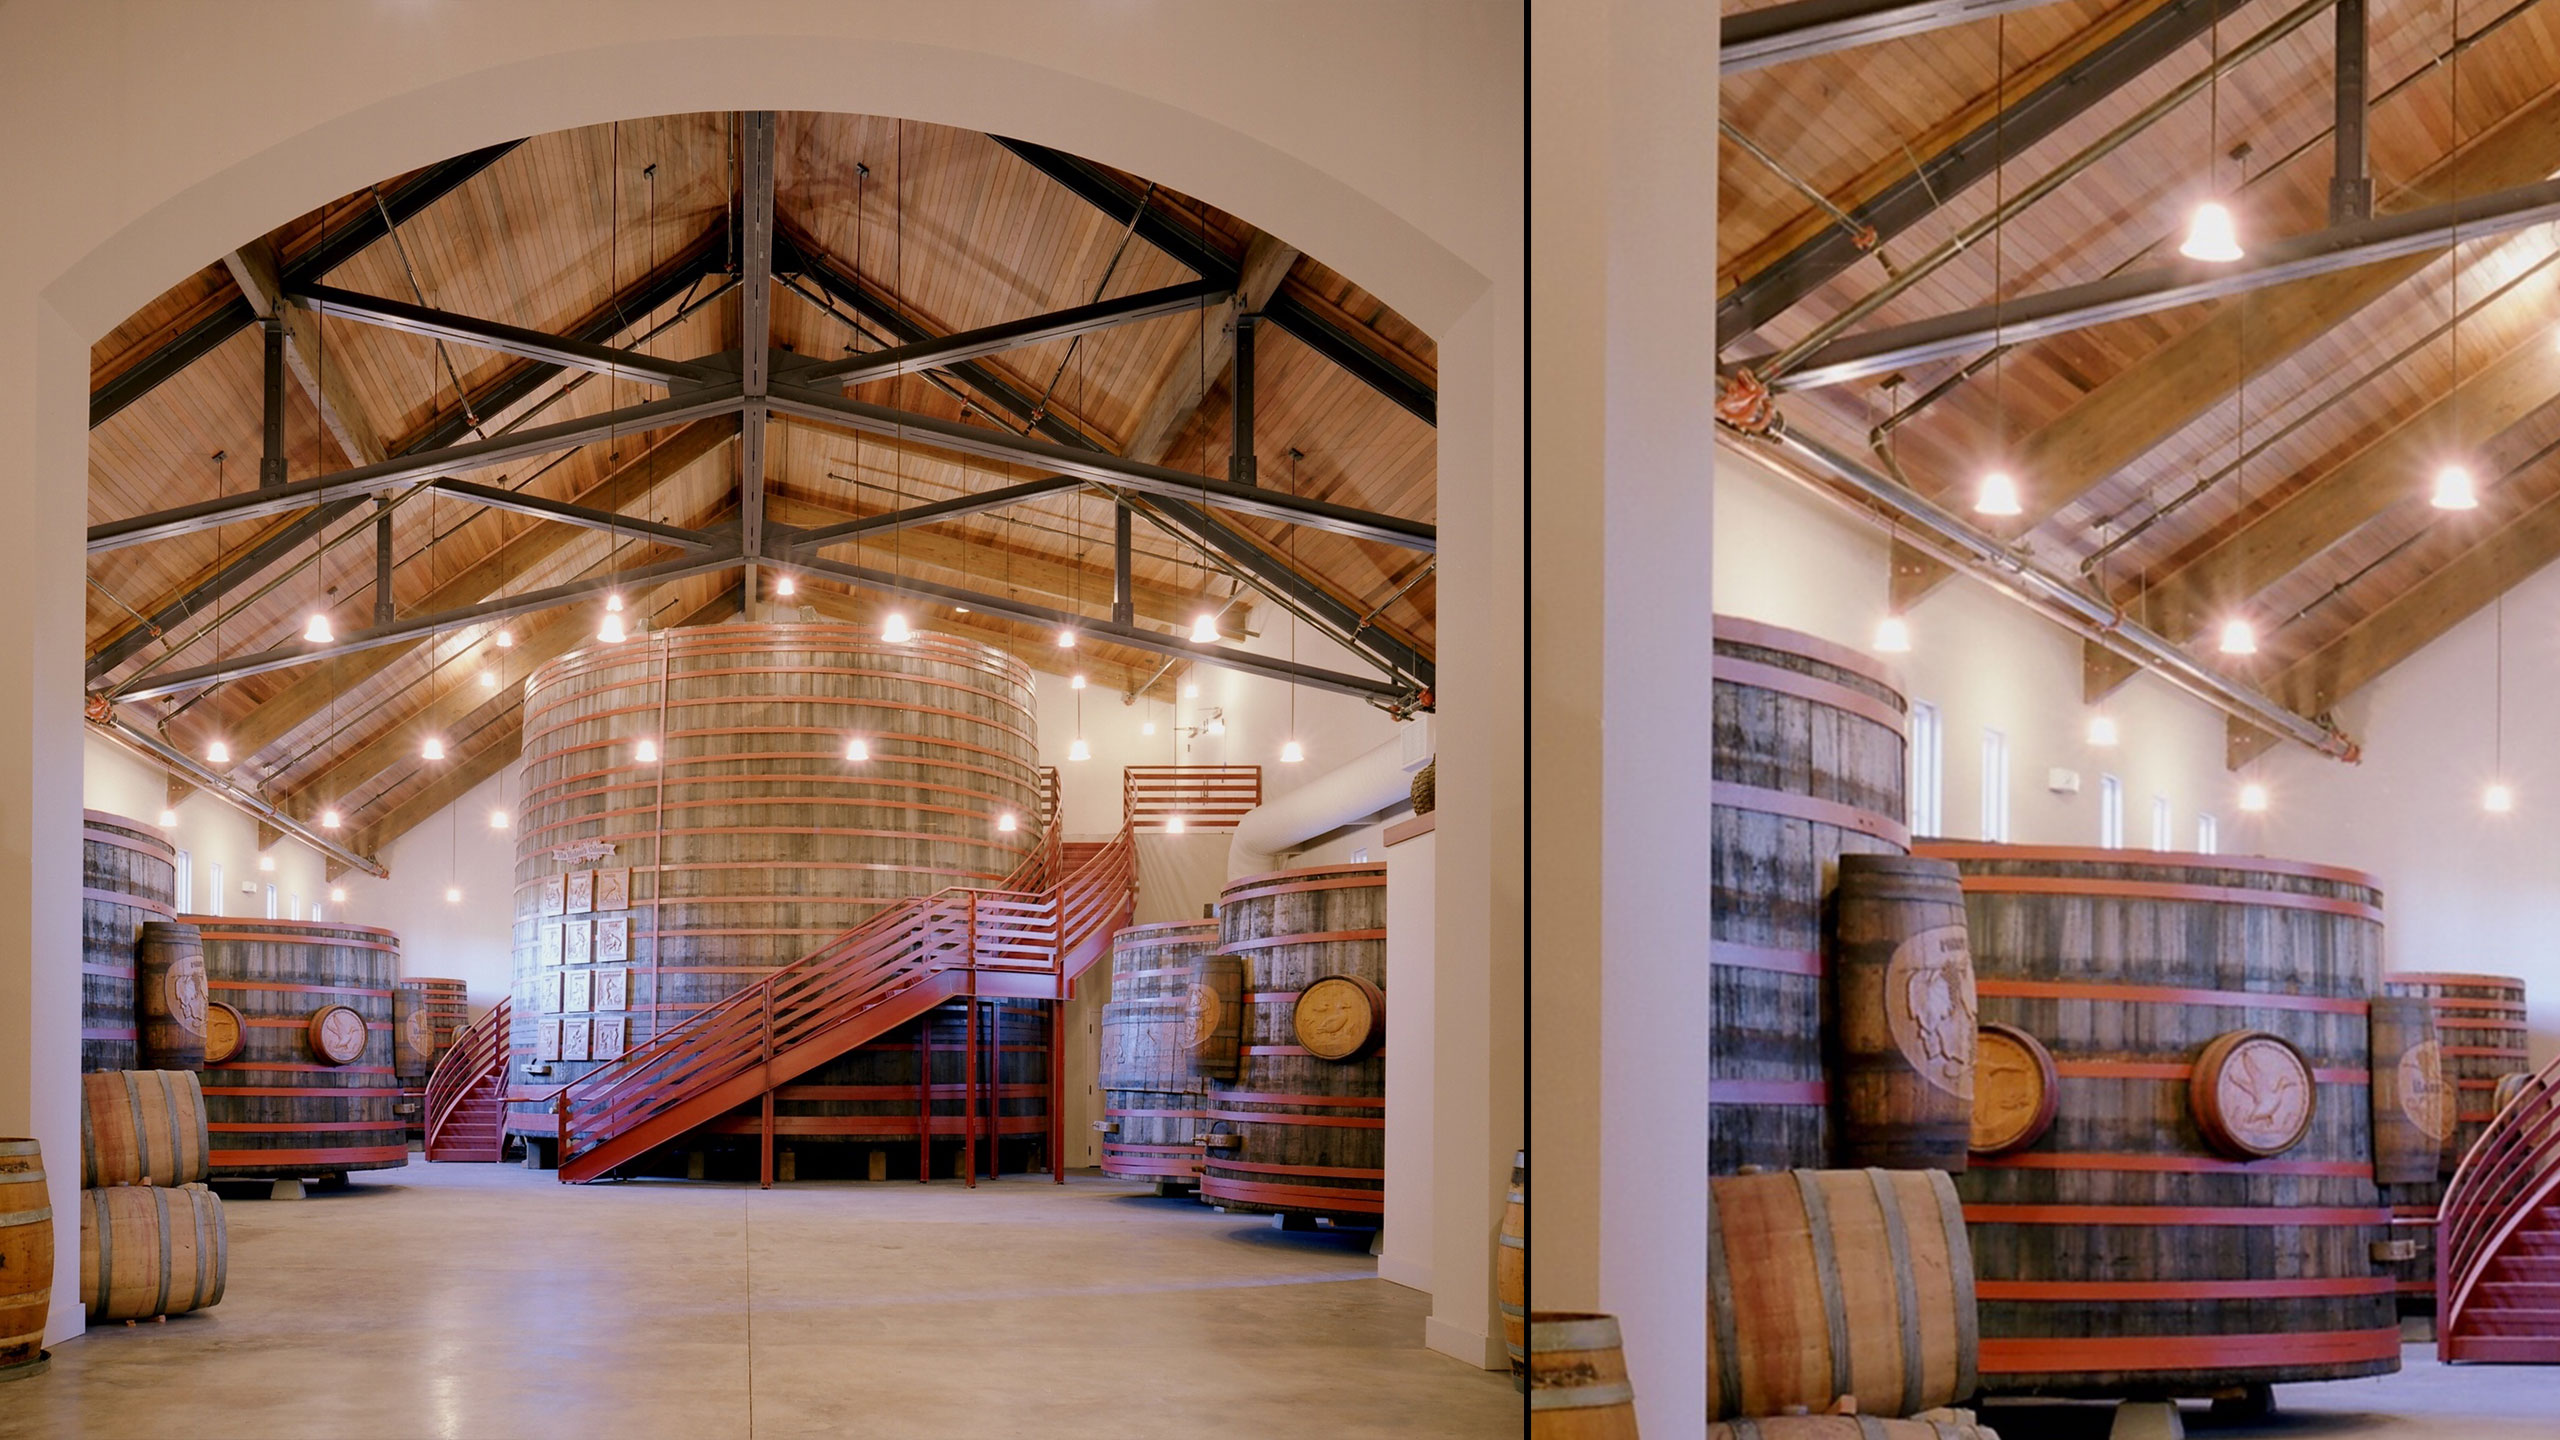 Winery-Architecture-Sonoma-Sebastiani-wine-barrel